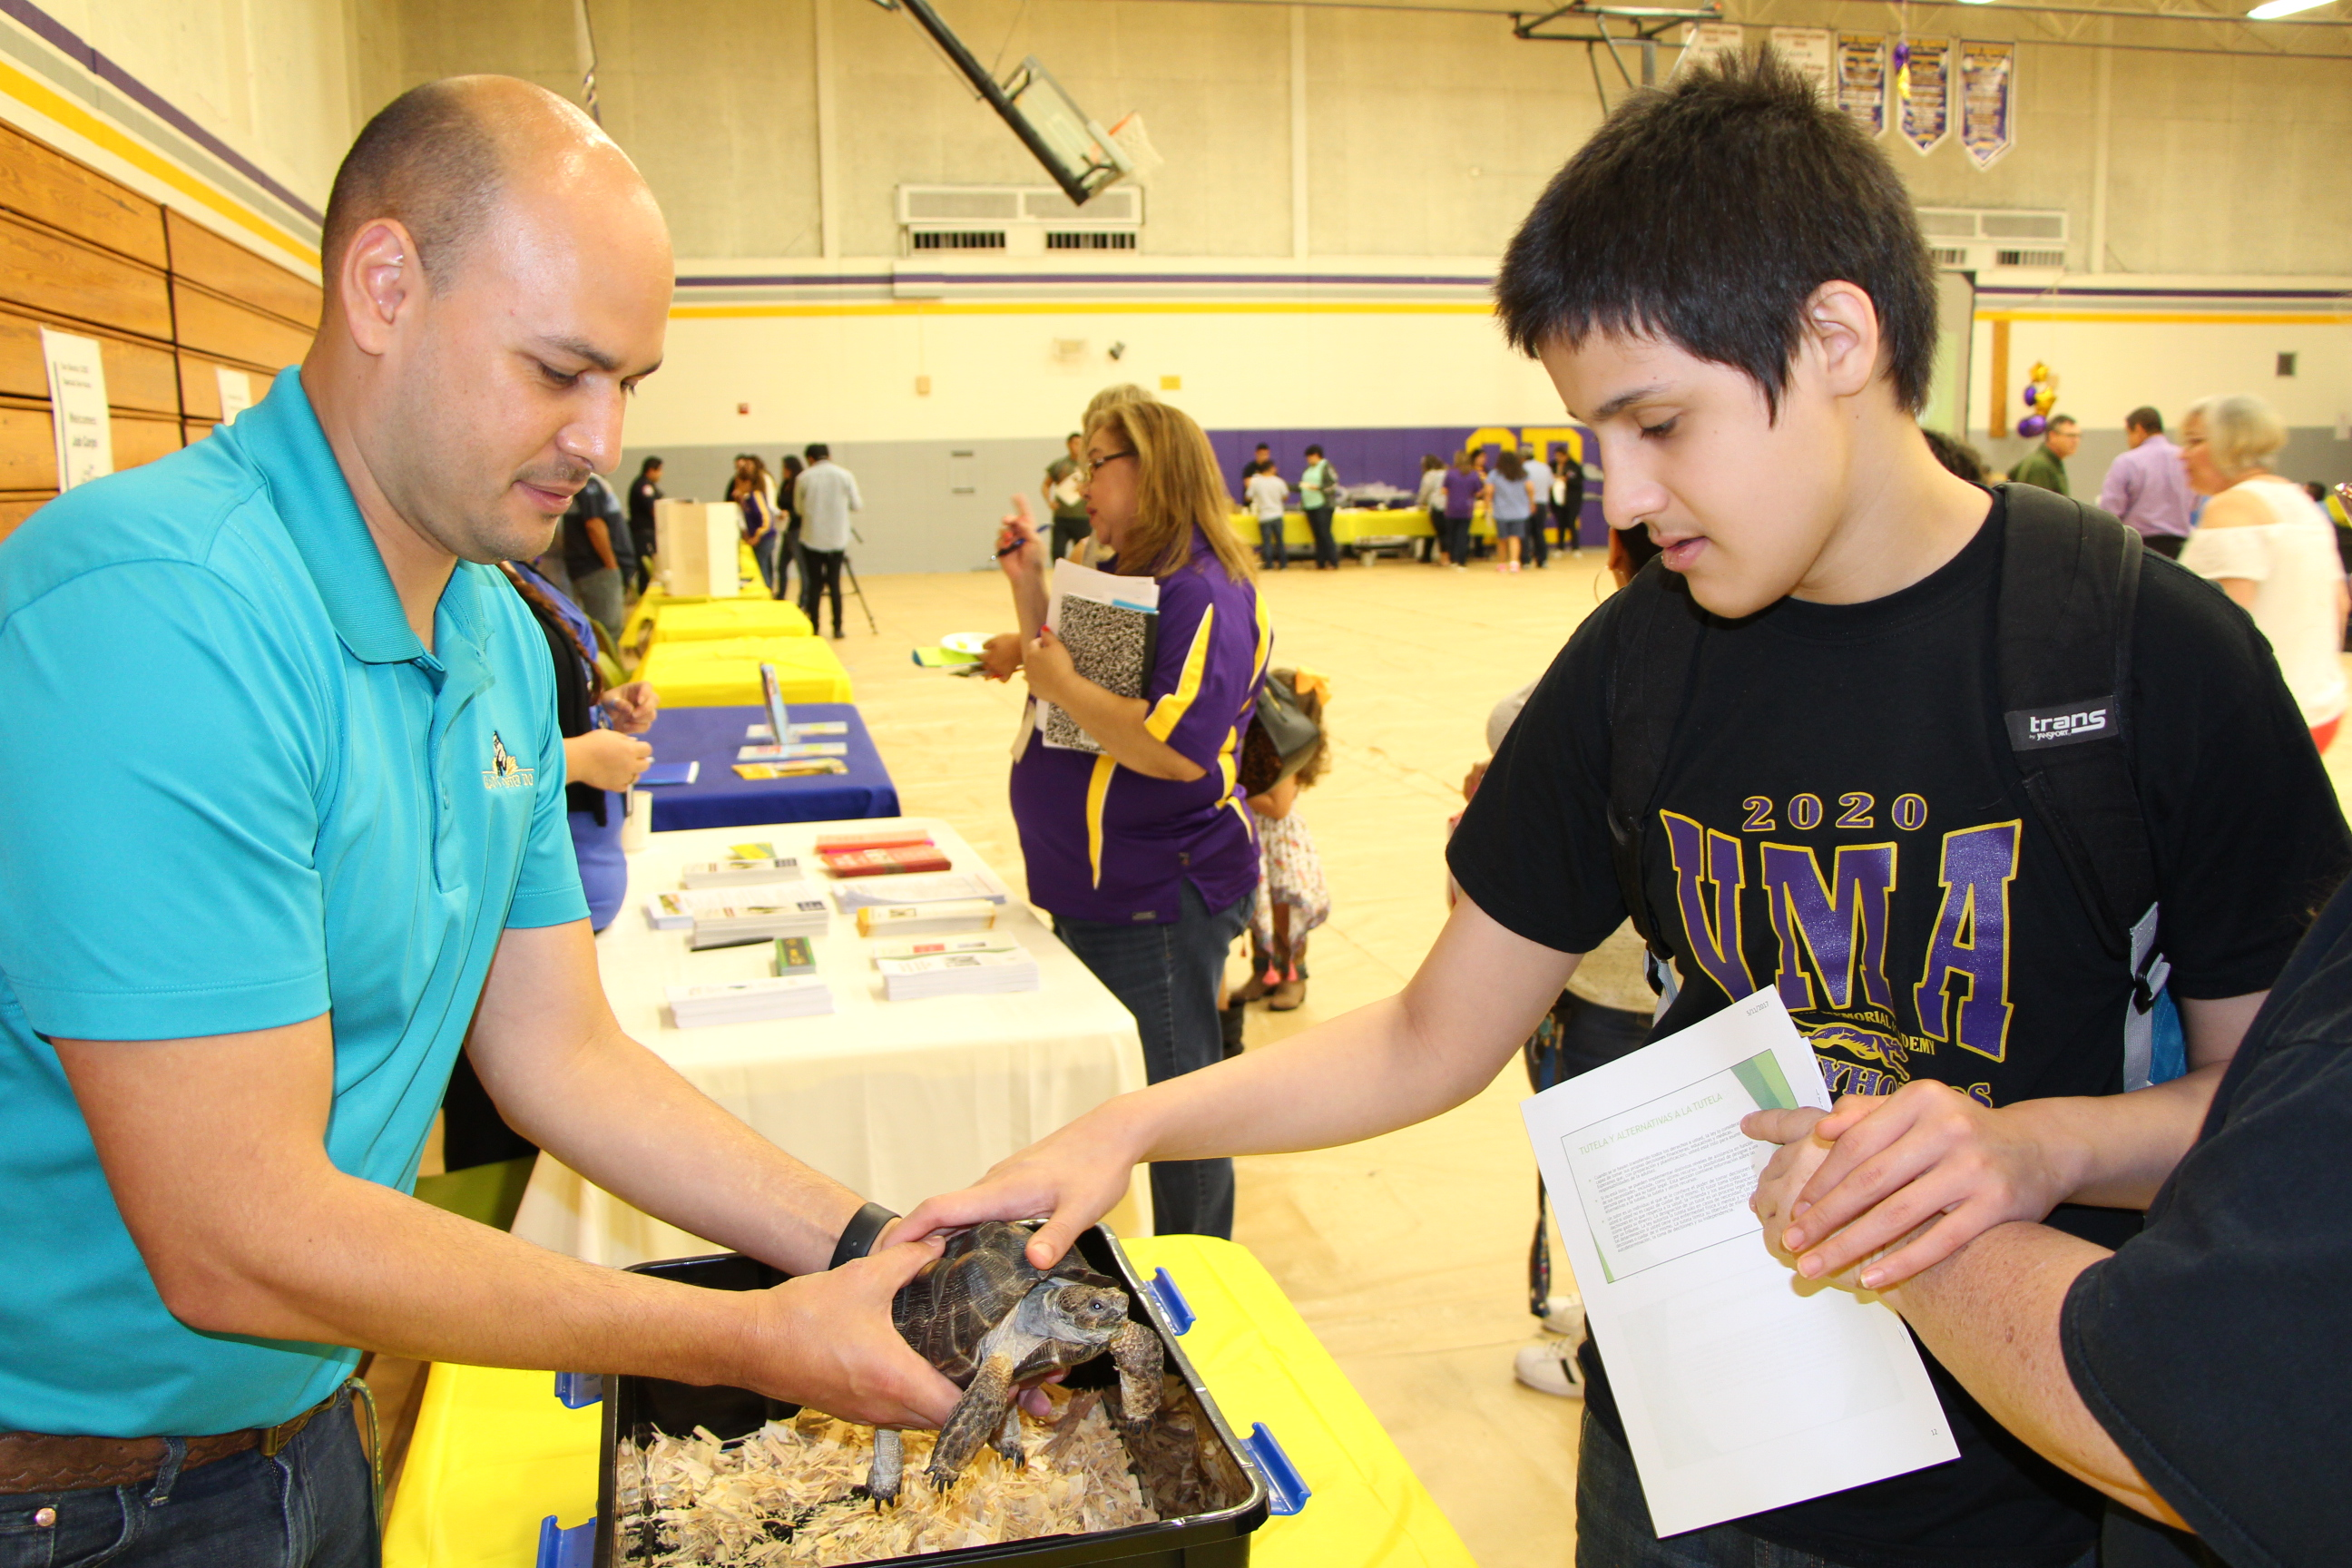 District Helps Students Explore Post Secondary Goals San